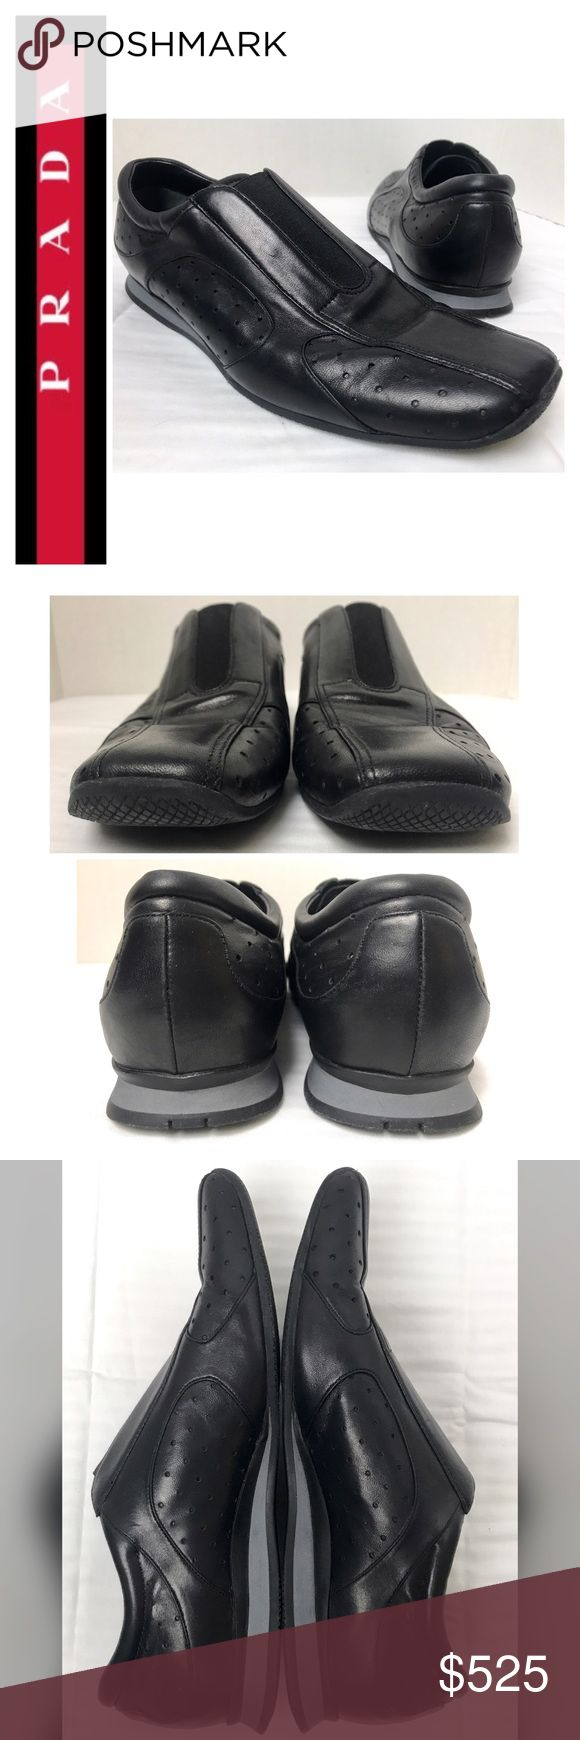 Prada Signature Leather Sneakers Prada Designer Sneakers in Soft Elegant Black Smooth Leather, Elastic Vamp for Easy Slip-On, Size 37 1/2 Tag which fits a US 7 1/2, Made in Italy 🇮🇹, So Comfortable that You'll feel like You're Walking on Air.  Own a Piece of Luxury Now!  Preloved in Excellent Mint Condition! Prada Shoes Sneakers